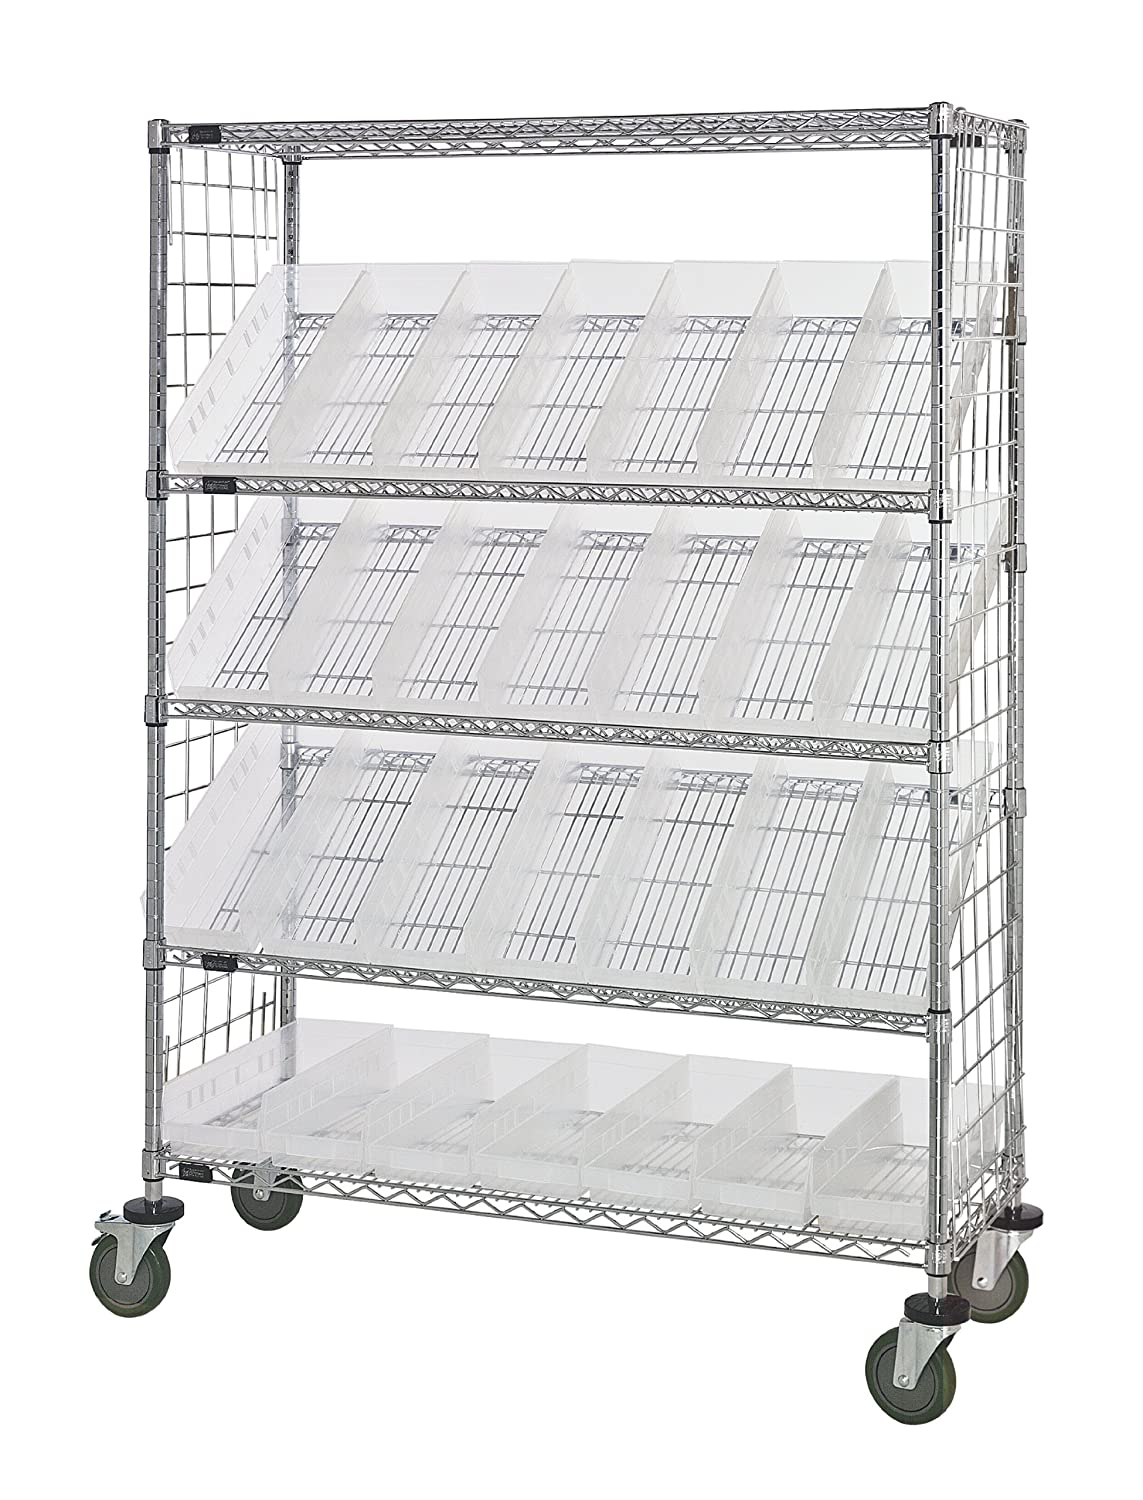 """B008I8B1A4 Quantum Storage Systems WRCSL5-63-2448EP-106CL 5-Tier Slanted Wire Shelving Suture Cart with 28 QSB106 Clear-View Economy Shelf Bins, Enclosed, 2 Horizontal and 3 Slanted Shelves, Chrome Finish, 69"""" Height x 48"""" Width x 24"""" Depth 9155j3oA2HL._S"""